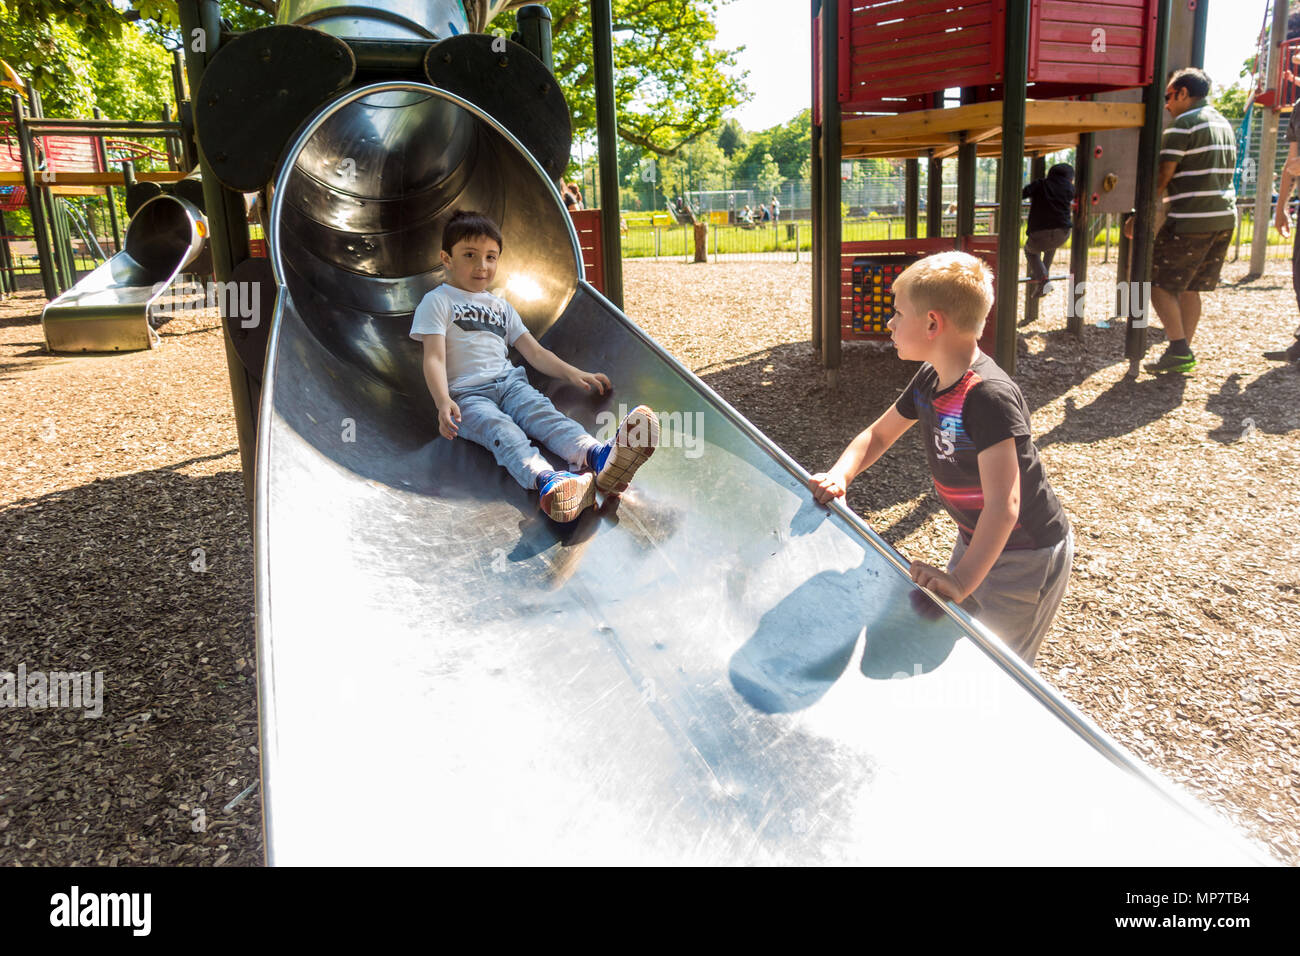 a-young-boy-emerges-from-a-tubular-metal-slide-in-prospect-park-in-reading-berkshire-uk-MP7TB4.jpg